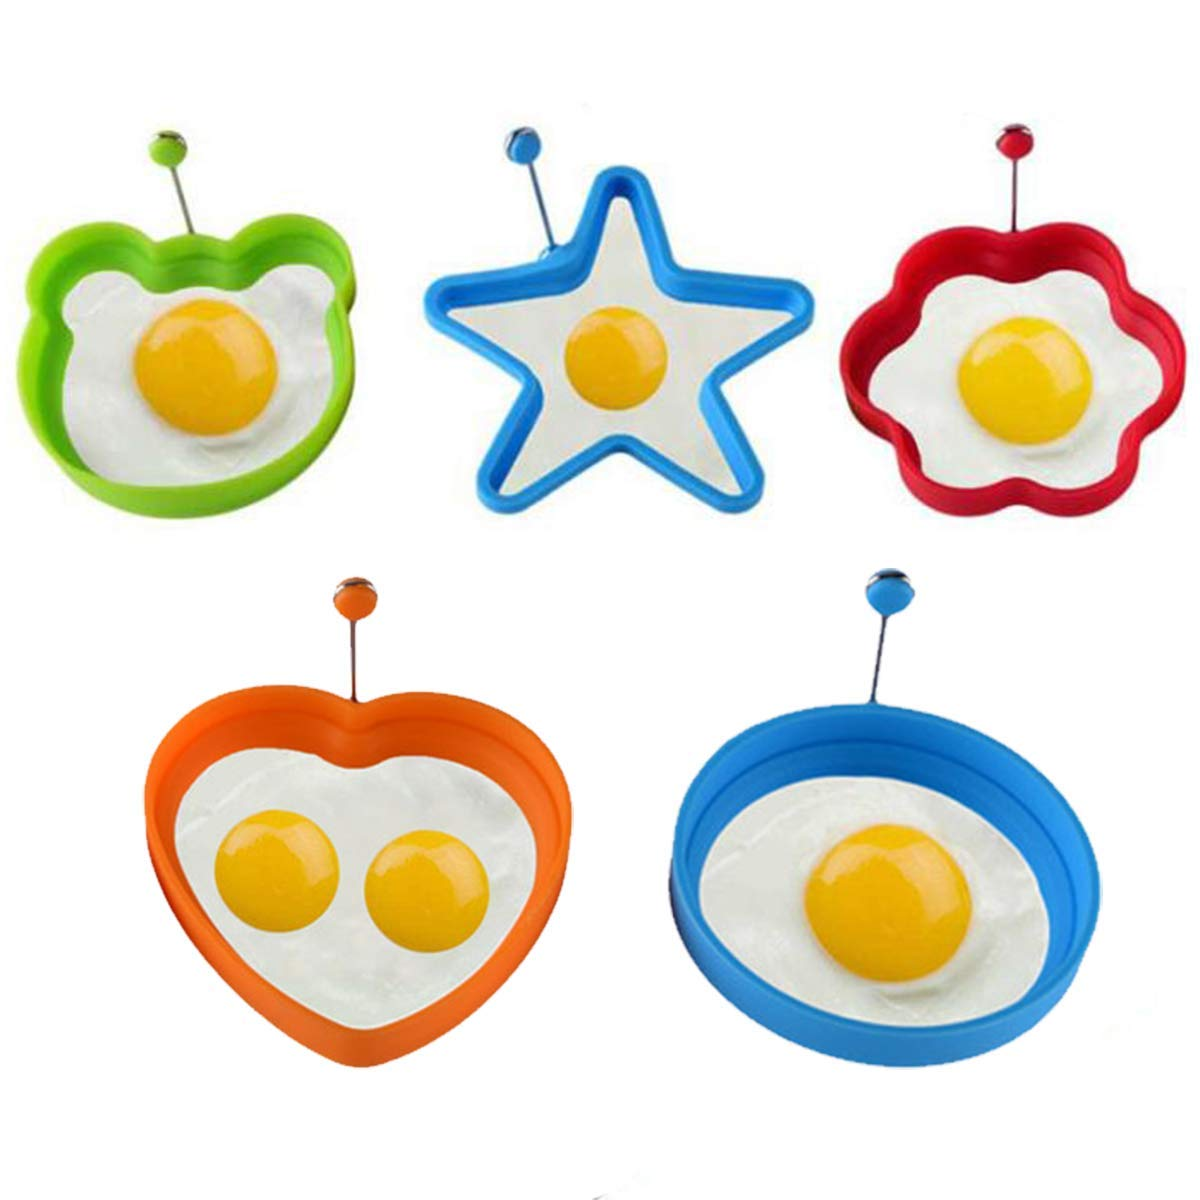 Fried Egg Mold 5 PCS Set, Silicone Egg Ring 4 Colors Different Shapes, Non Stick Pancake Shaper Mold With Handles, High-grade Cooking Kitchen Tools by Kinone